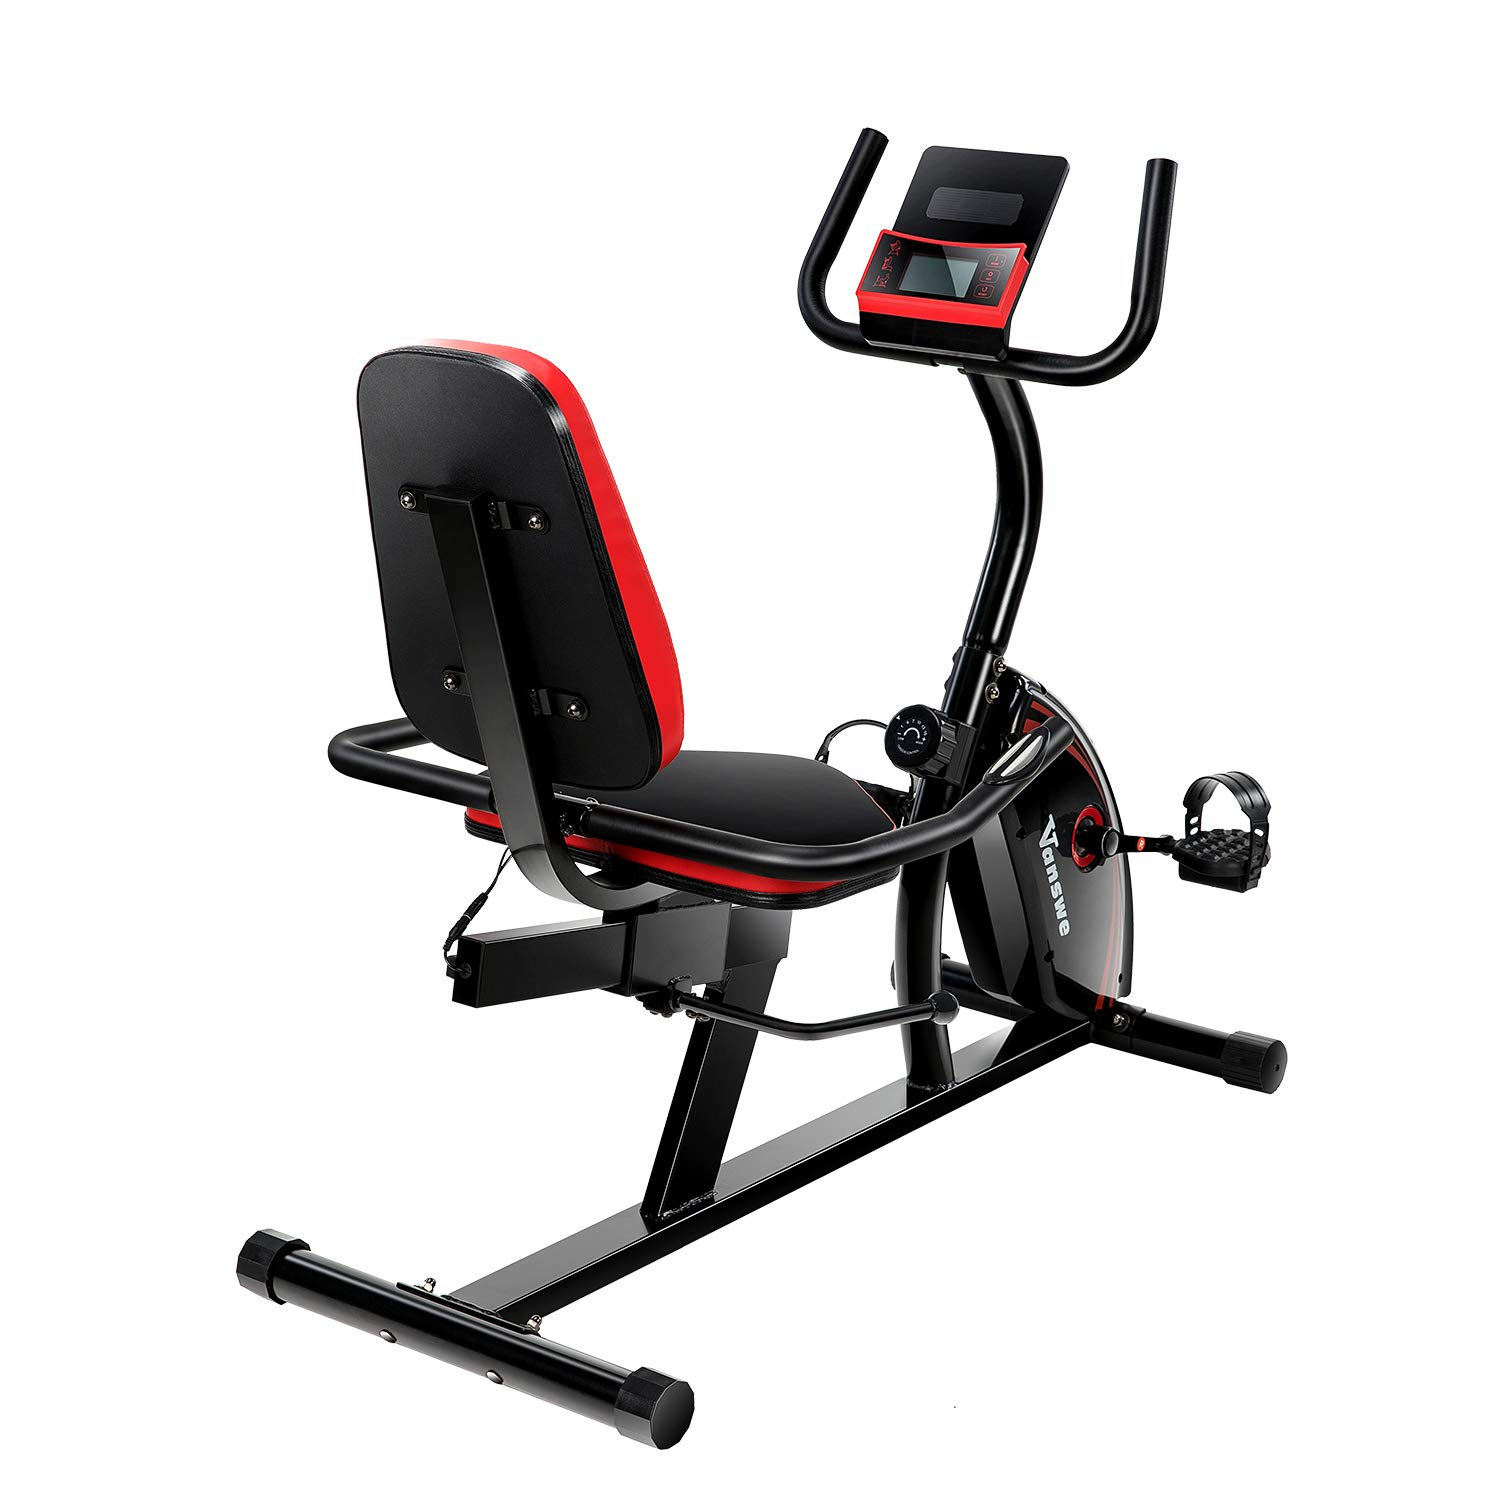 Magnetic Tension Exercise Bike Adjustable Resistance Recumbent Bike Transport Wheels Fitness Stationary Bicycle (Red/Black)